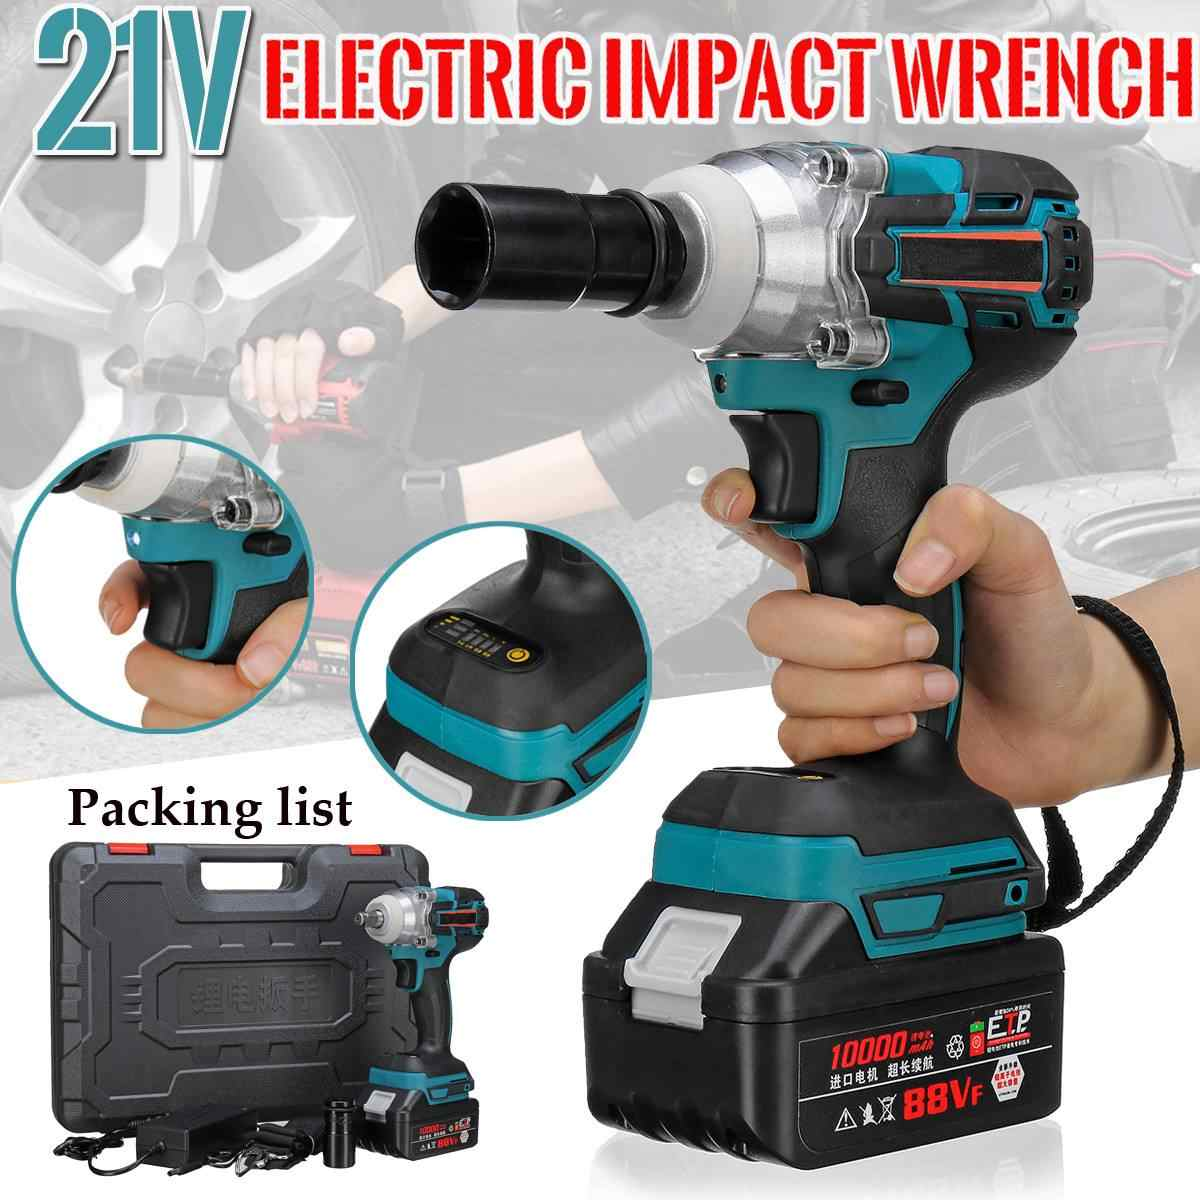 Brushless Cordless Electric Wrench Impact Socket Wrench 21V 10000mAh Li Battery Hand Drill Installation Power Tools